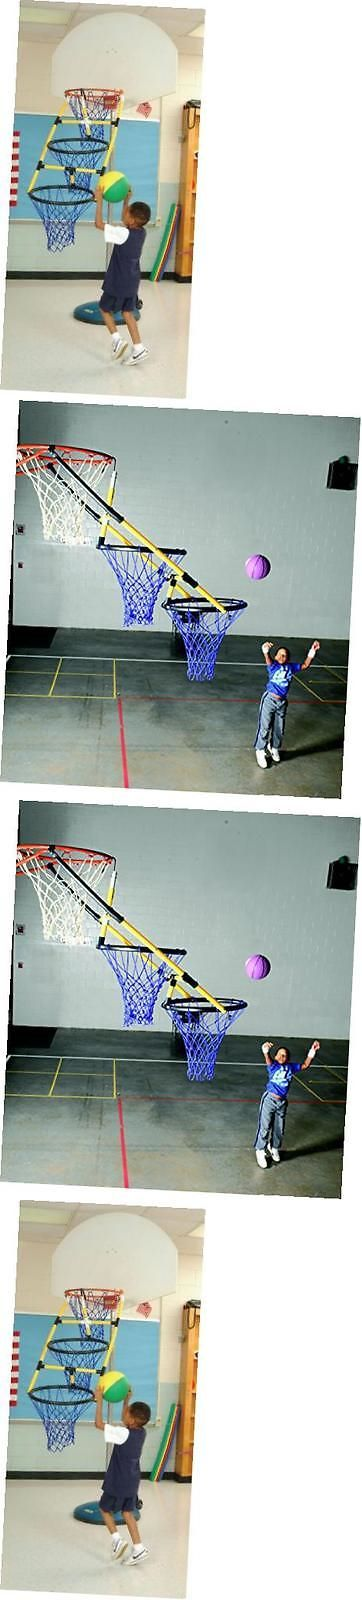 Rims and Nets 158962: 101648 Park And Sun Two-Hoop Basketball Goals, 3 Tier Drop -> BUY IT NOW ONLY: $96.02 on eBay!